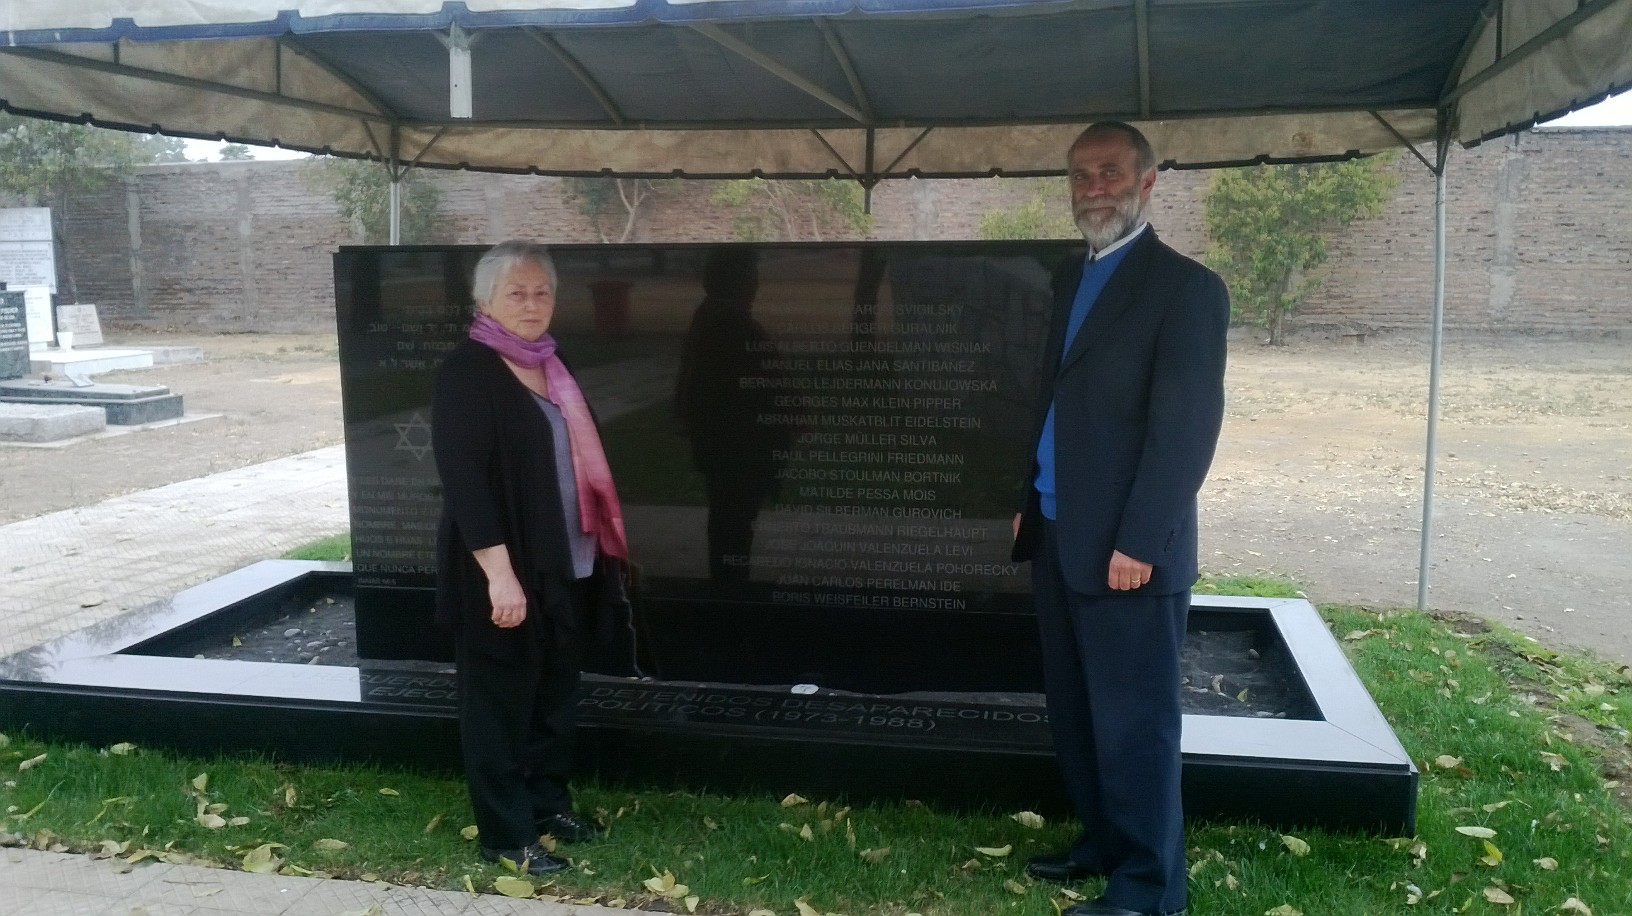 Olga Weisfeiler & Mario Sadovnik, of Bnai Brith Chile, at the Memorial. Santiago, Chile. April 6, 2014